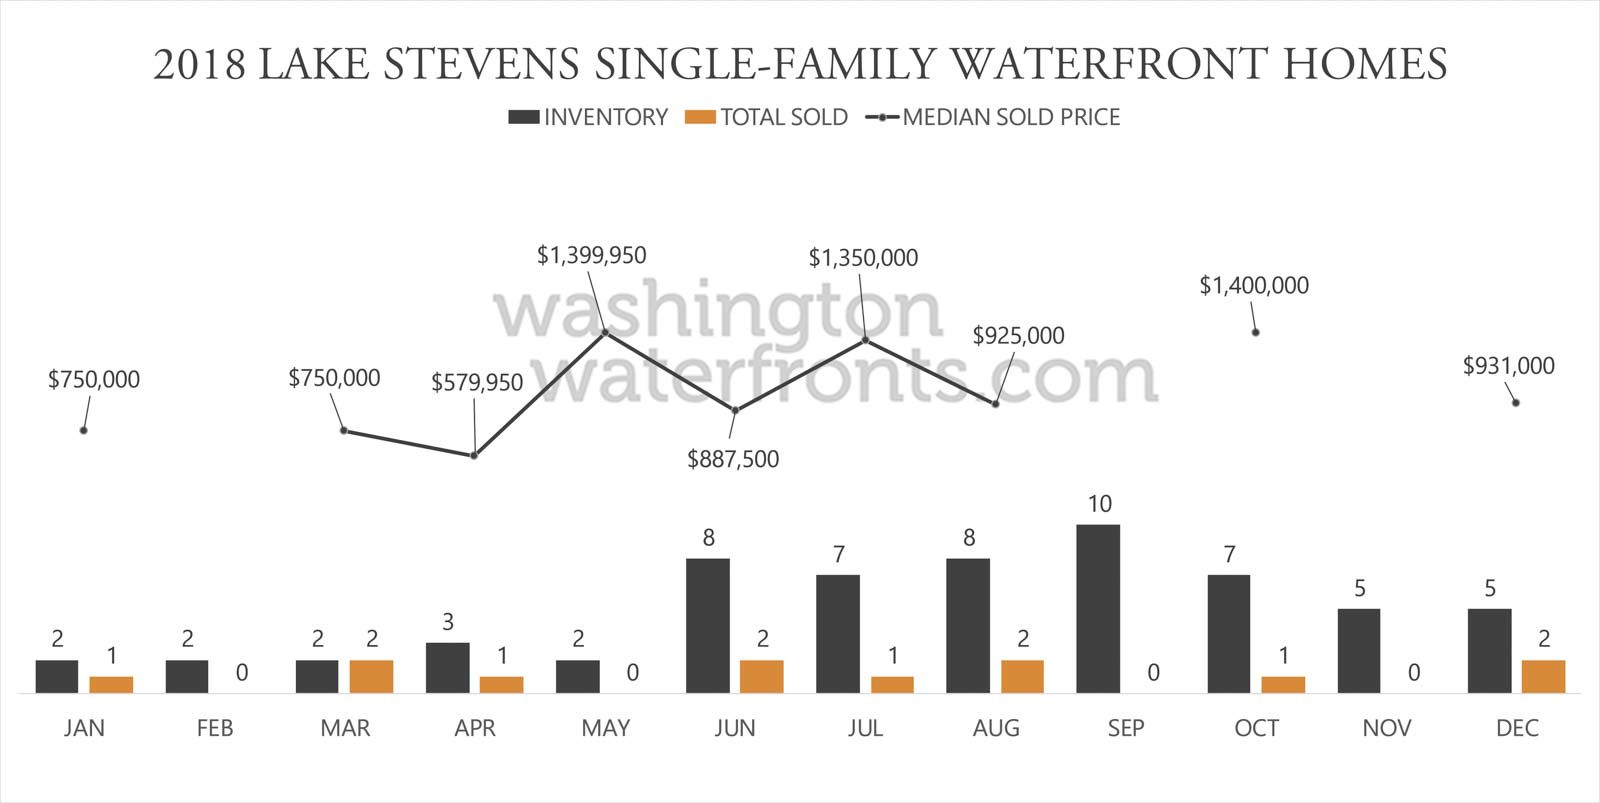 Lake Stevens Waterfront Inventory